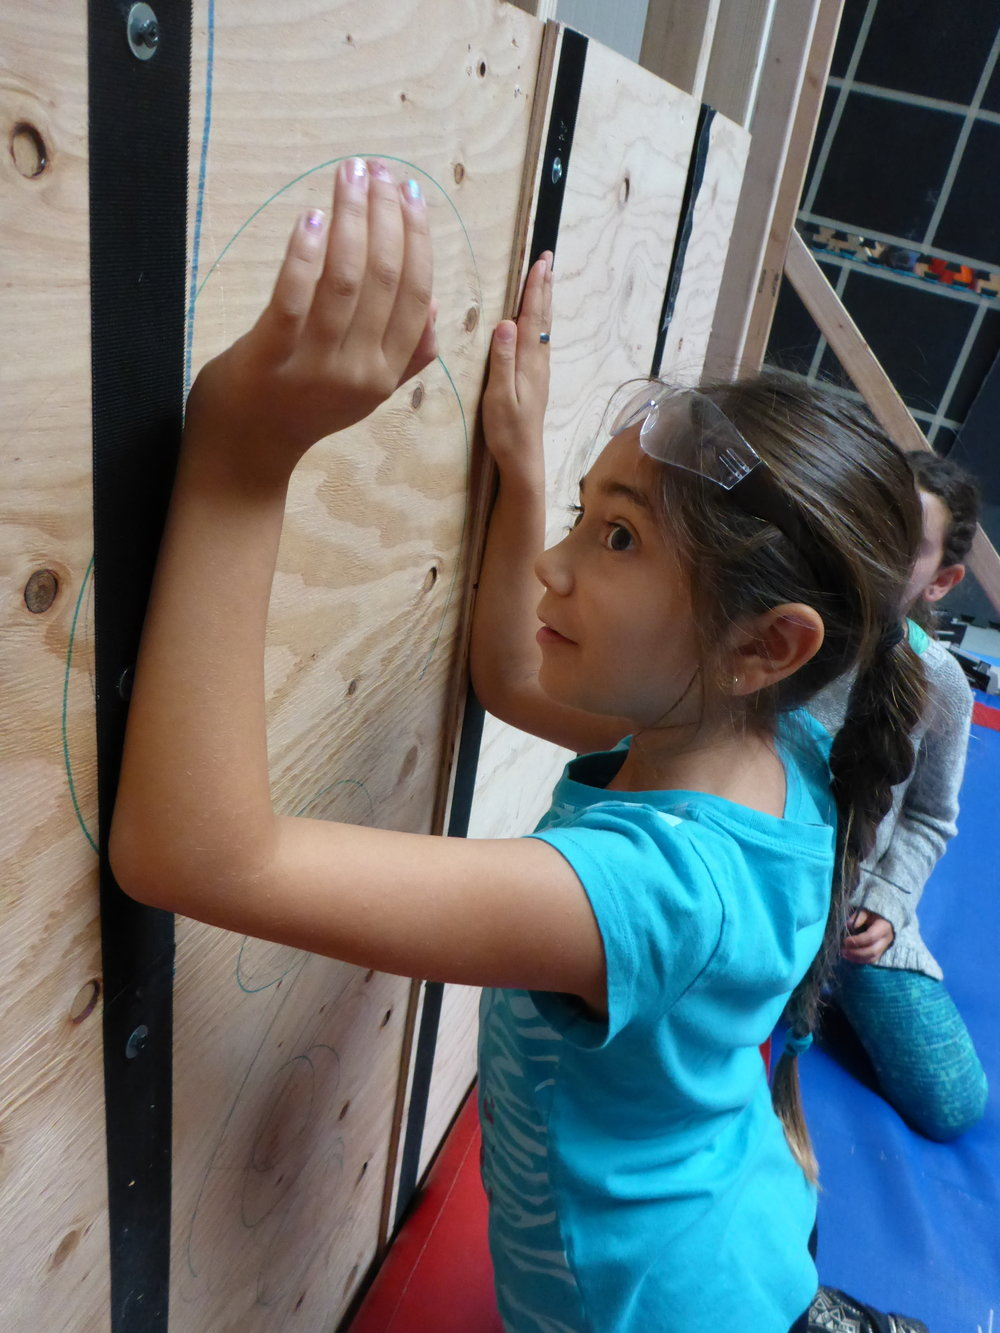 Xochi demonstrates how elbow pads might help distribute weight on the flywall across a few more points of contact. Industrial velcro is rated to hold 10 pounds, so we're operating on the assumption that each point on our body that is stuck to the wall should be able to support 10 pounds. Which means that we'll probably need more than four points of contact!